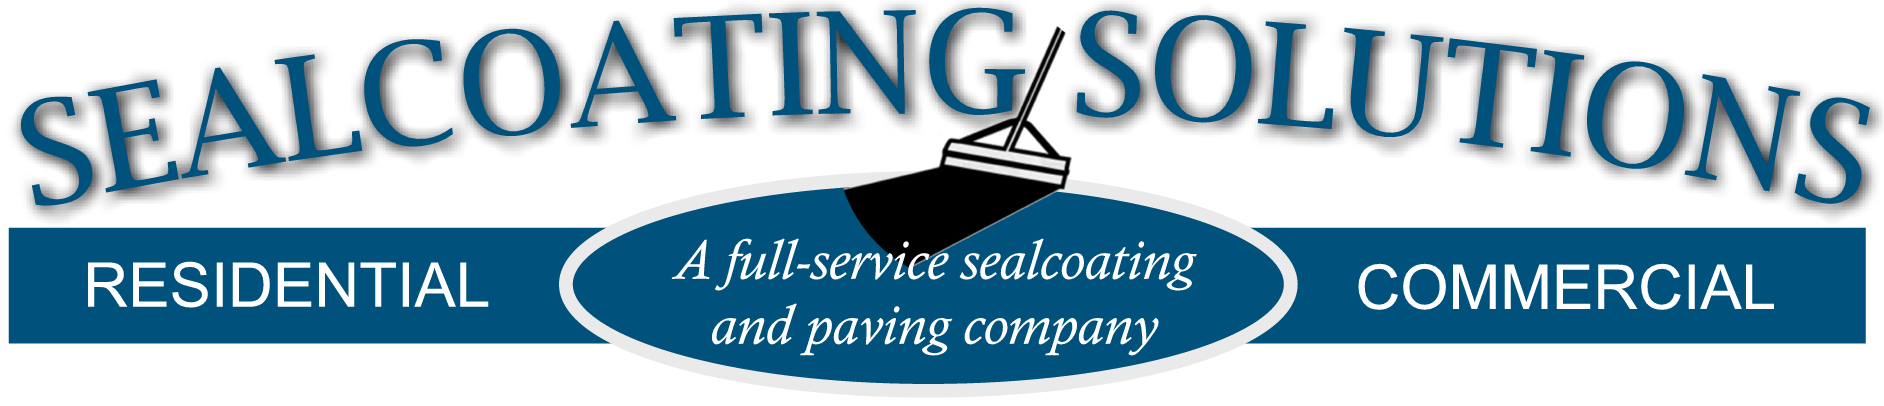 Southbury Sealcoating Solutions